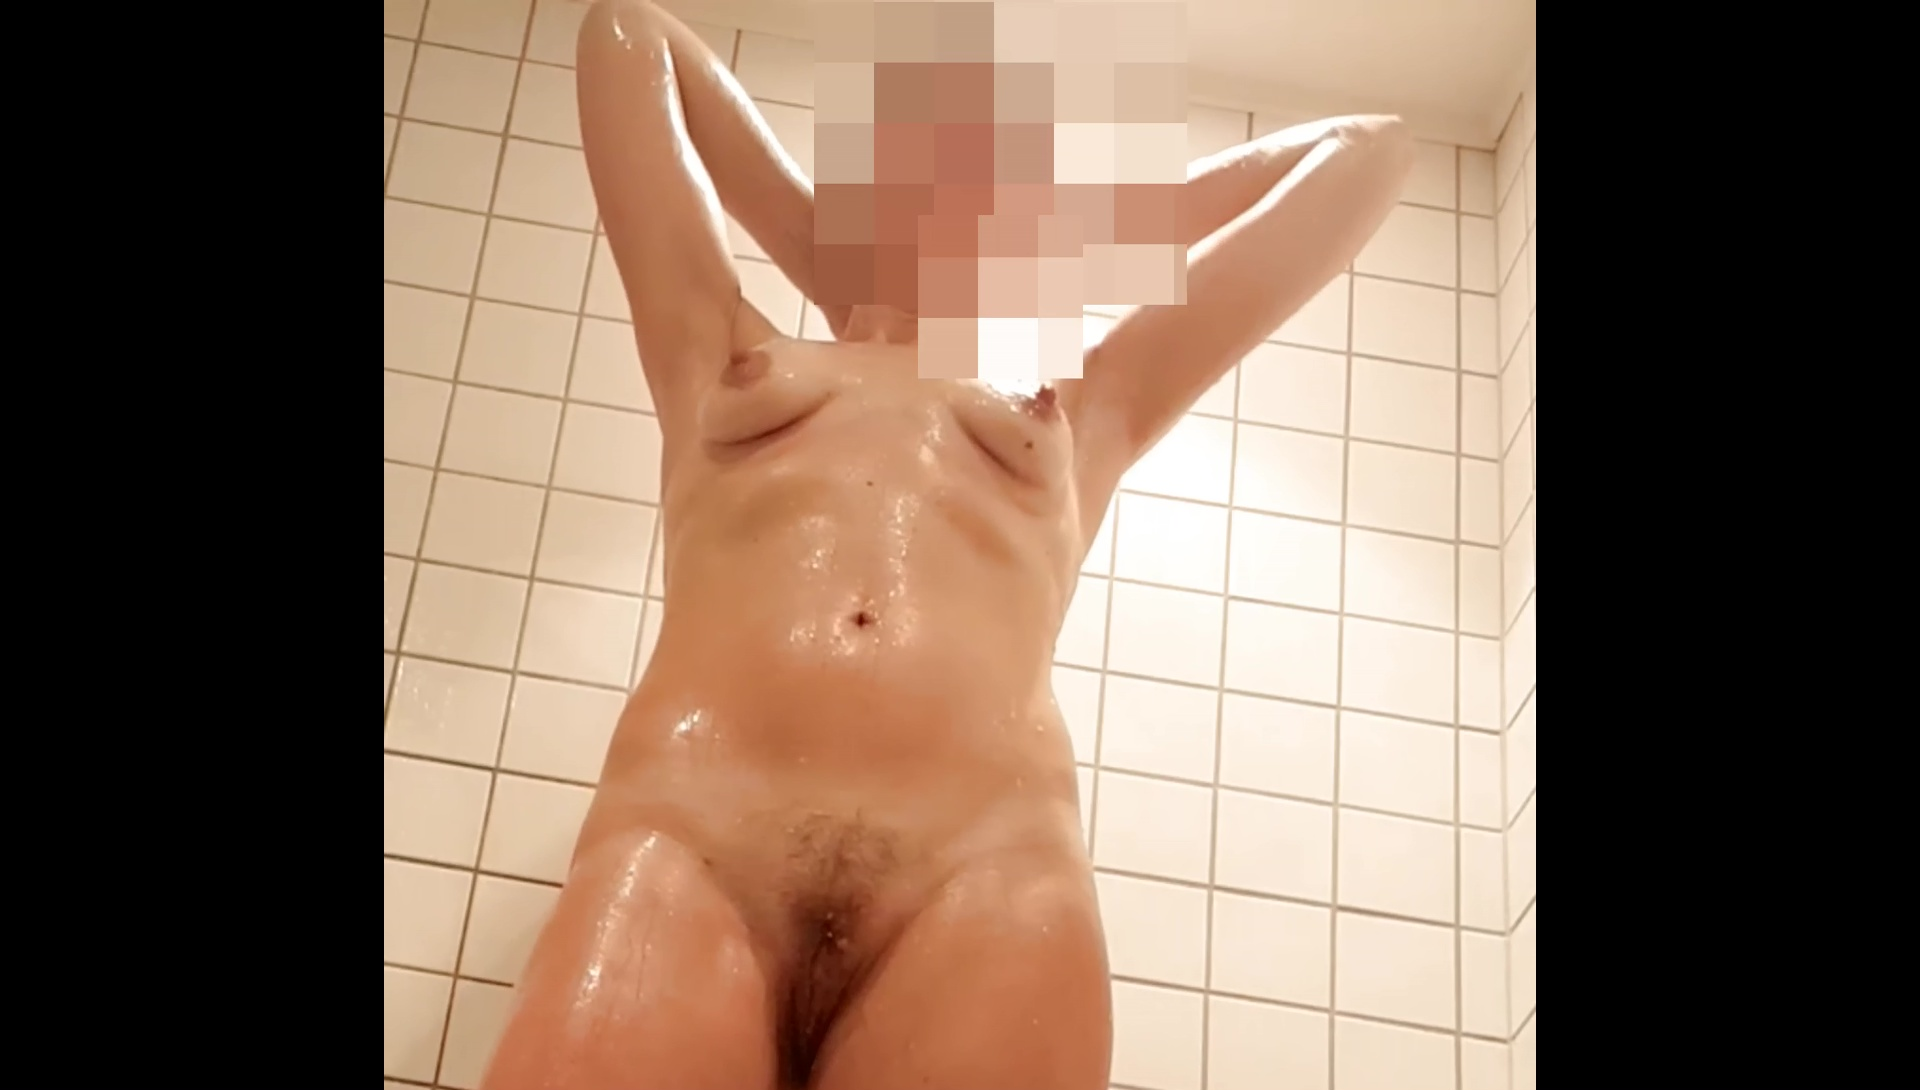 Mother I'd Like To Have Sex With In Bathroom – Undercover Agent Digital Camera